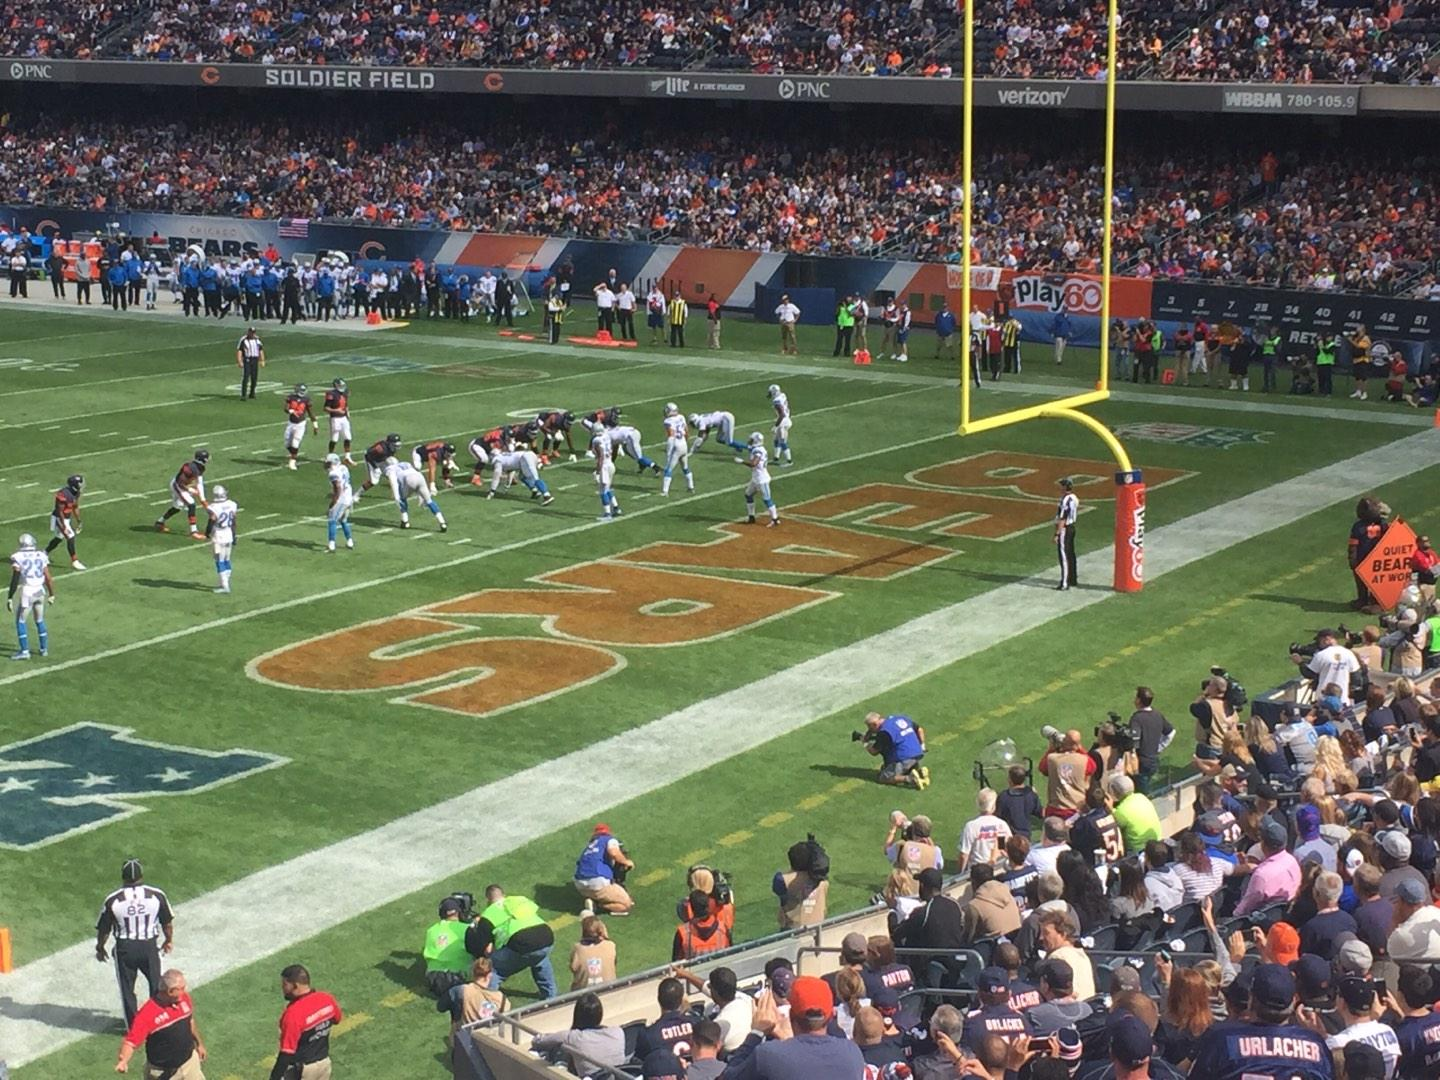 Soldier Field Section 228 Row 3 Seat 9